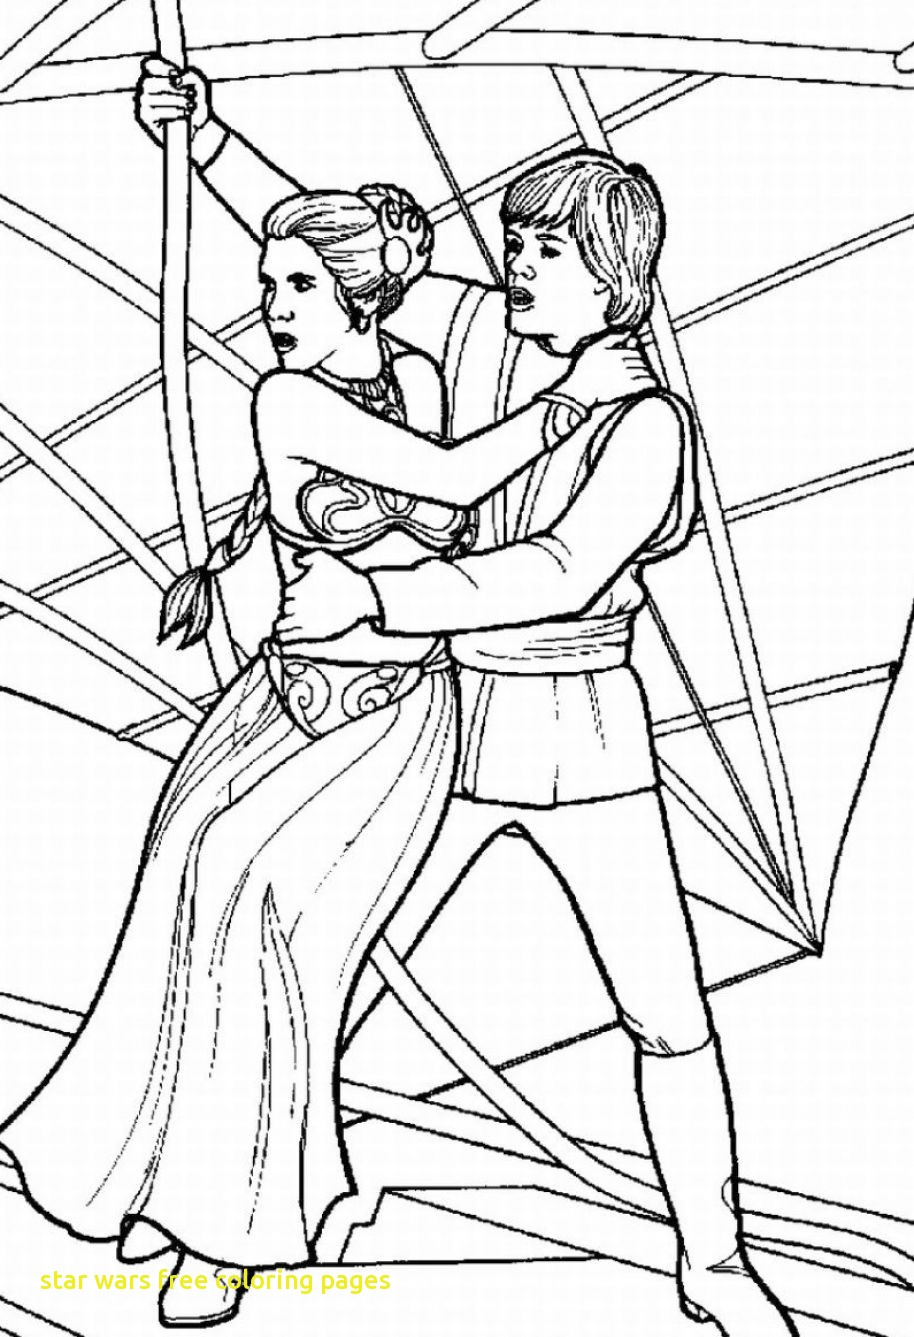 Star Wars Coloring Pages Free Printable and Capricus Download Of Coloring Pages Of Star Wars Free Coloring Pages Star Wars Printable